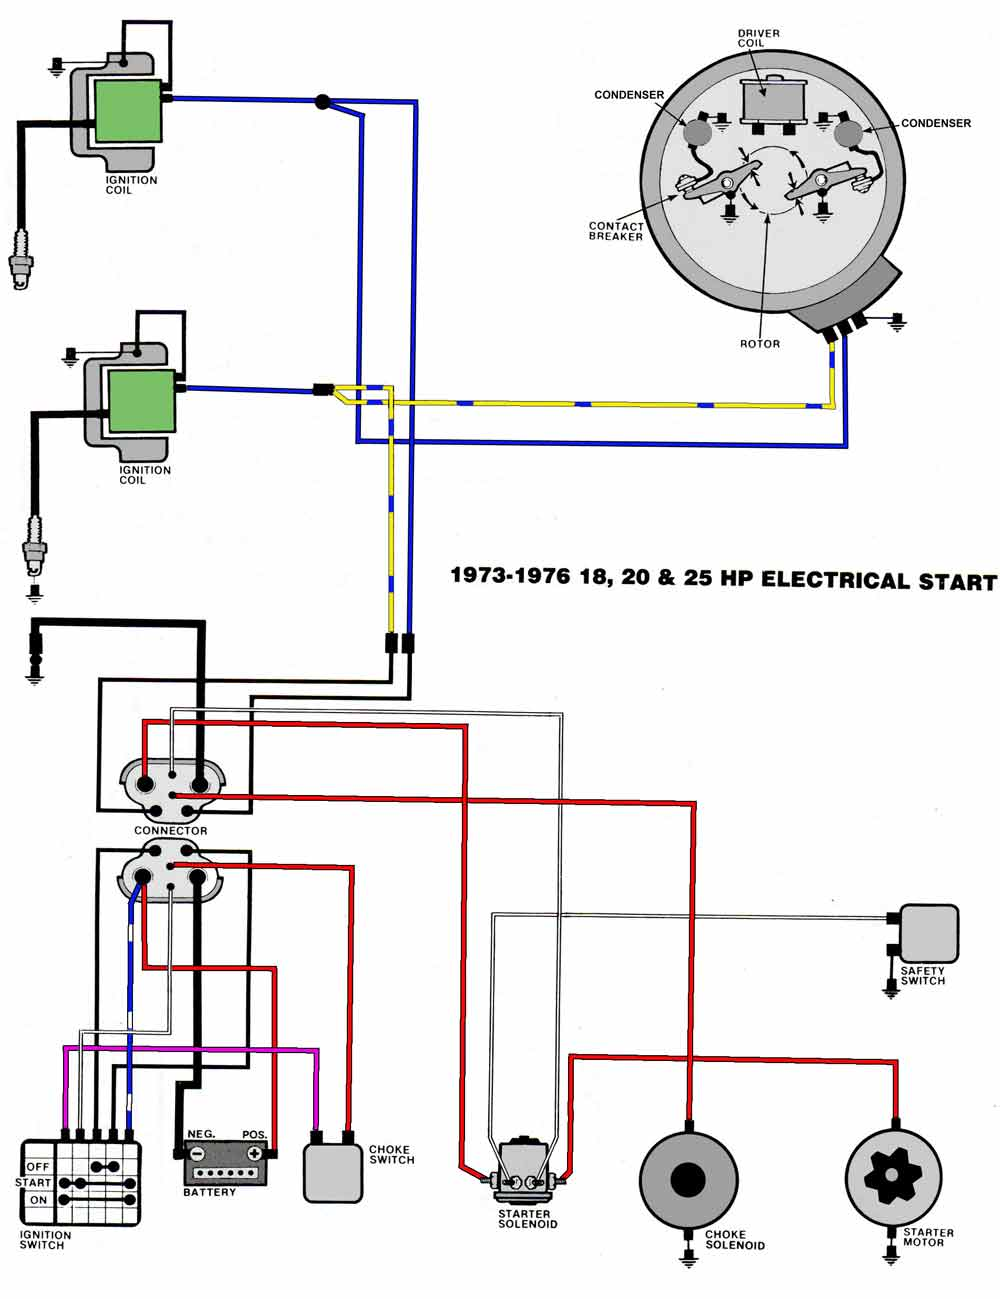 1971 Chevy Starter Wiring Diagram Custom Project York Air Handler Model Ahe36c3xh21a Evinrude Johnson Outboard Diagrams Mastertech